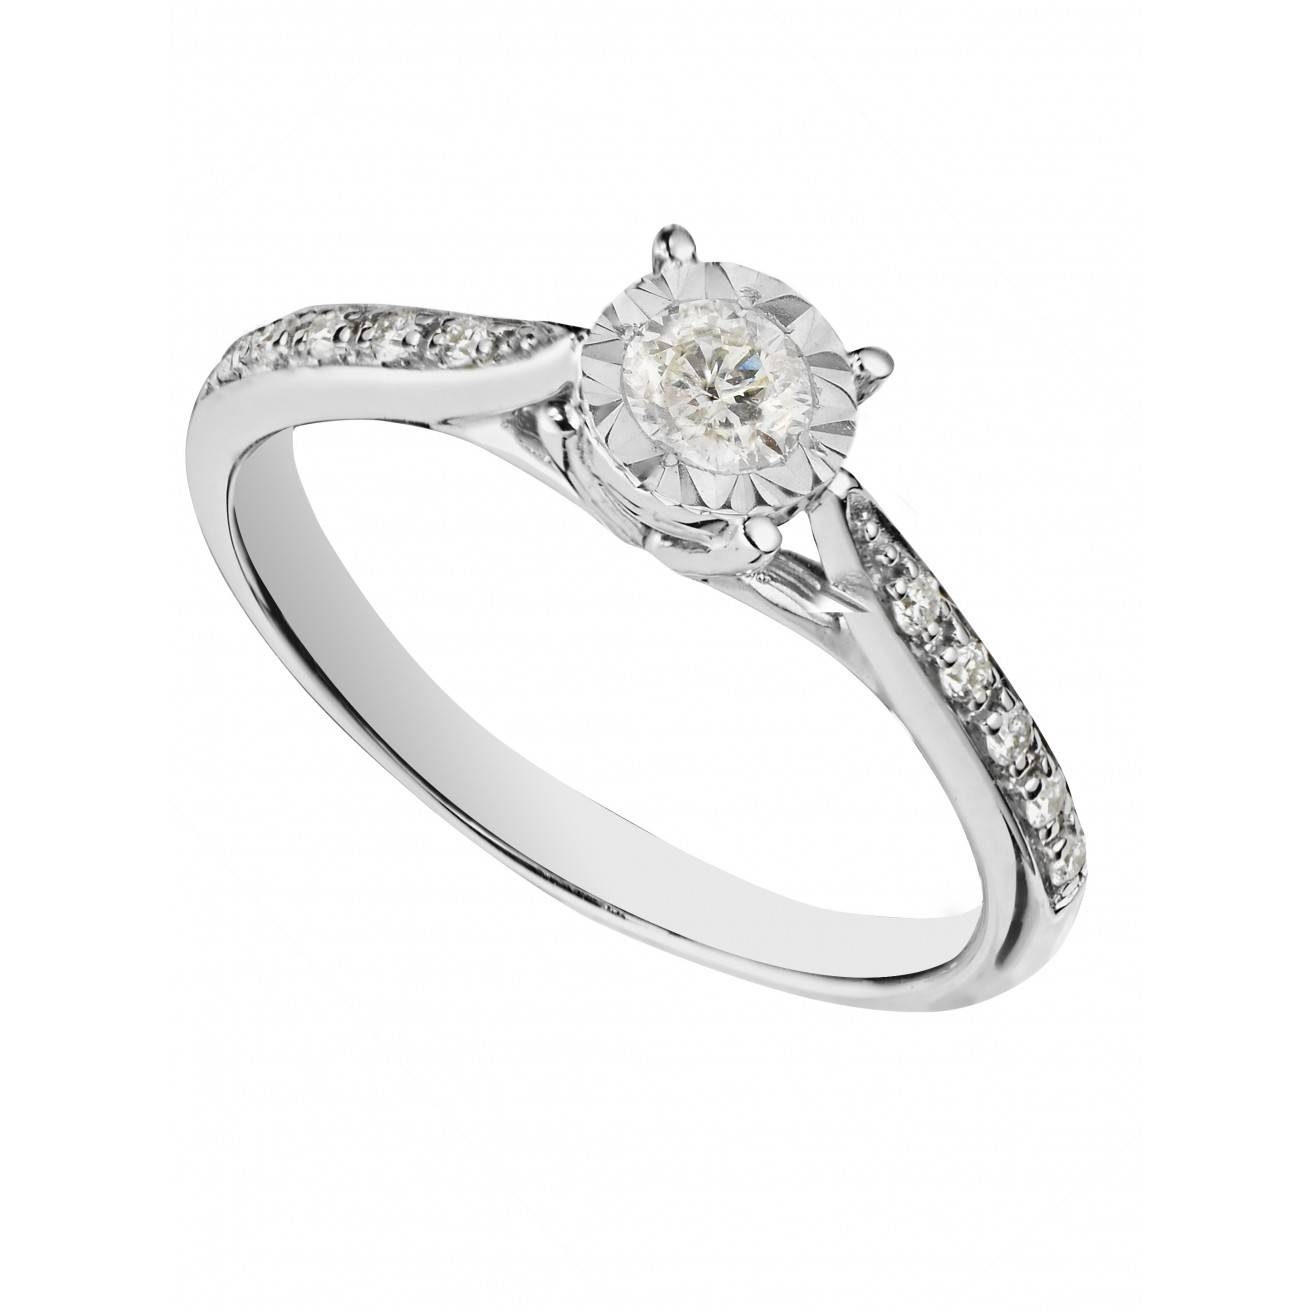 Buy A White Gold Engagement Ring Fraser Hart With Wedding Rings Diamonds